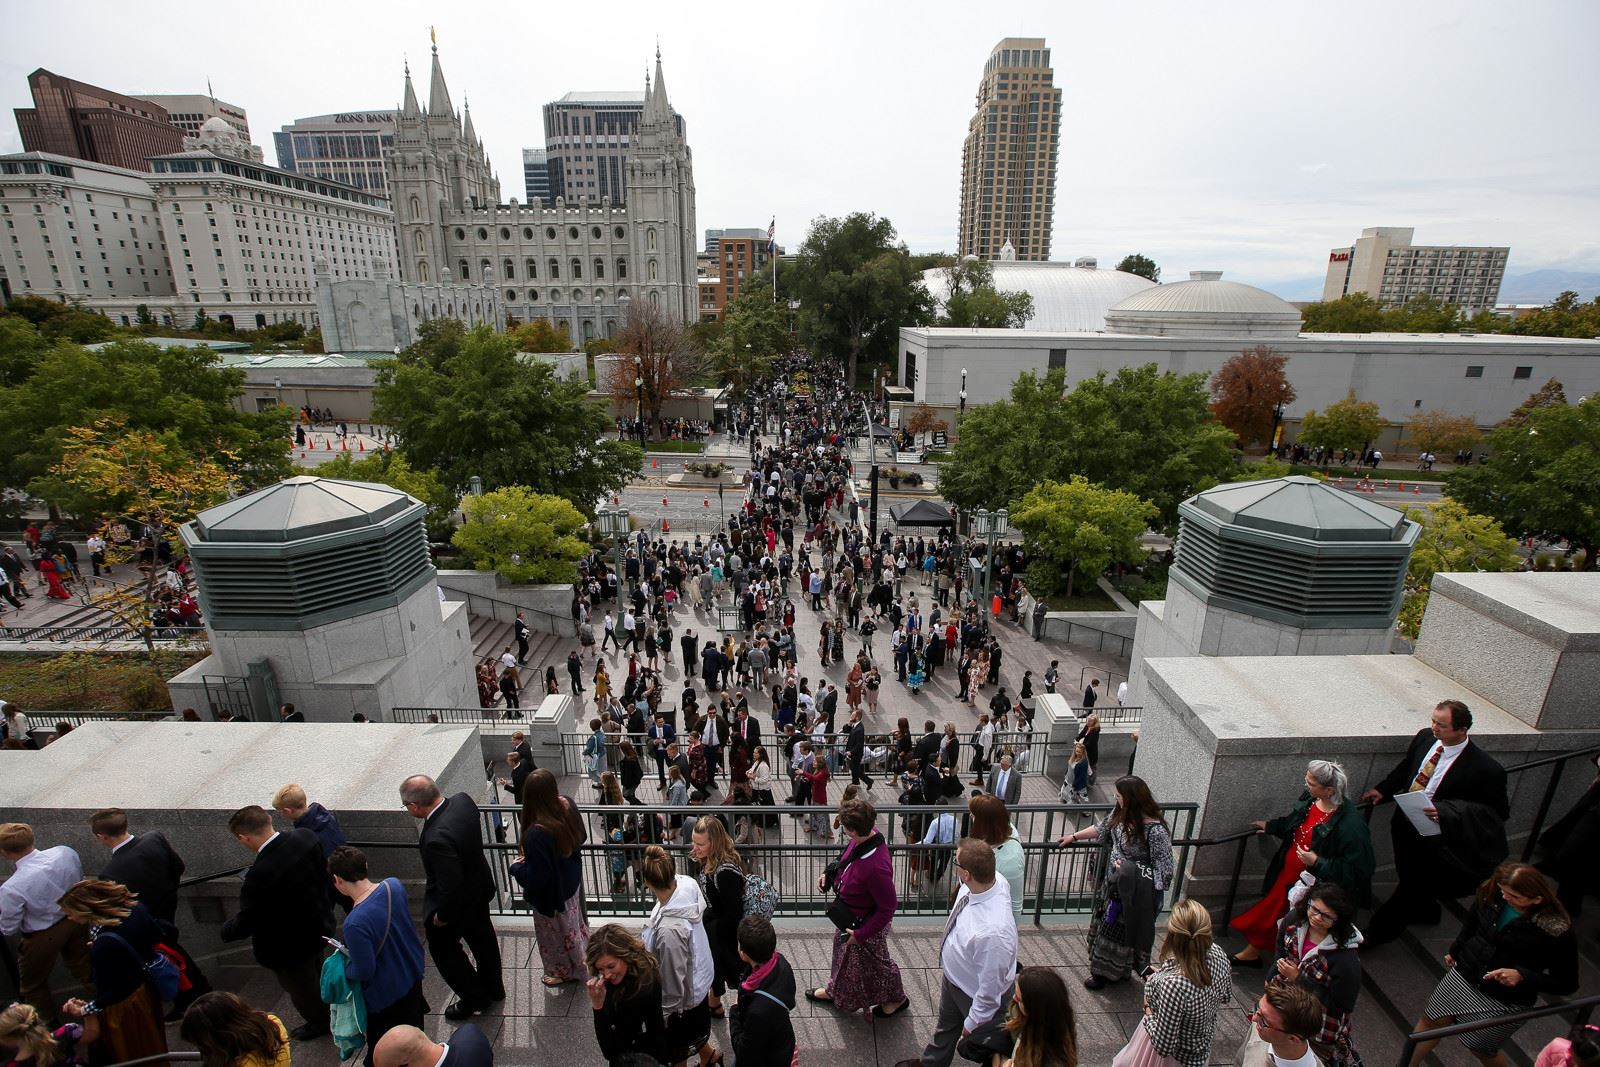 Church to Reopen Temple Square this Summer